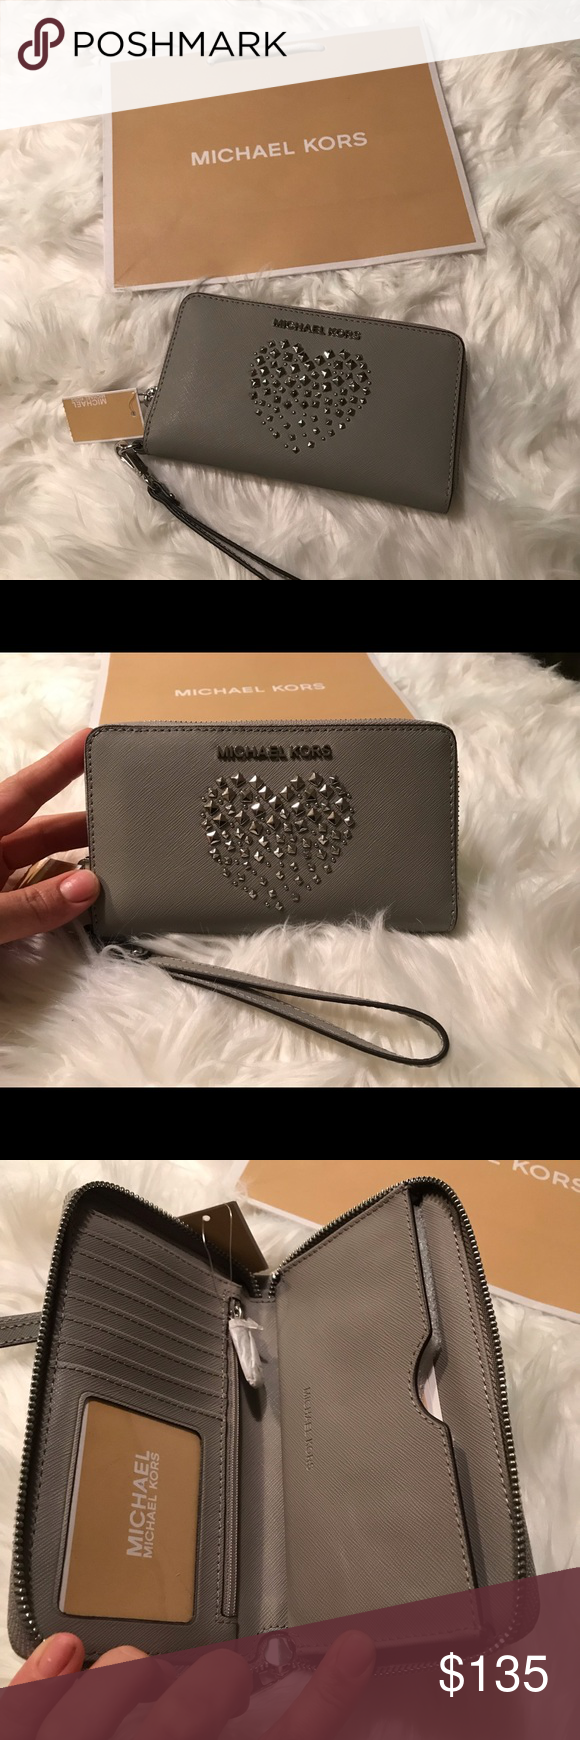 932fd36d09d25c Michael Kors wallet Brand new with tag + mk bag 🥰 Reasonable offer are  welcome 🥰 Michael Kors Bags Wallets